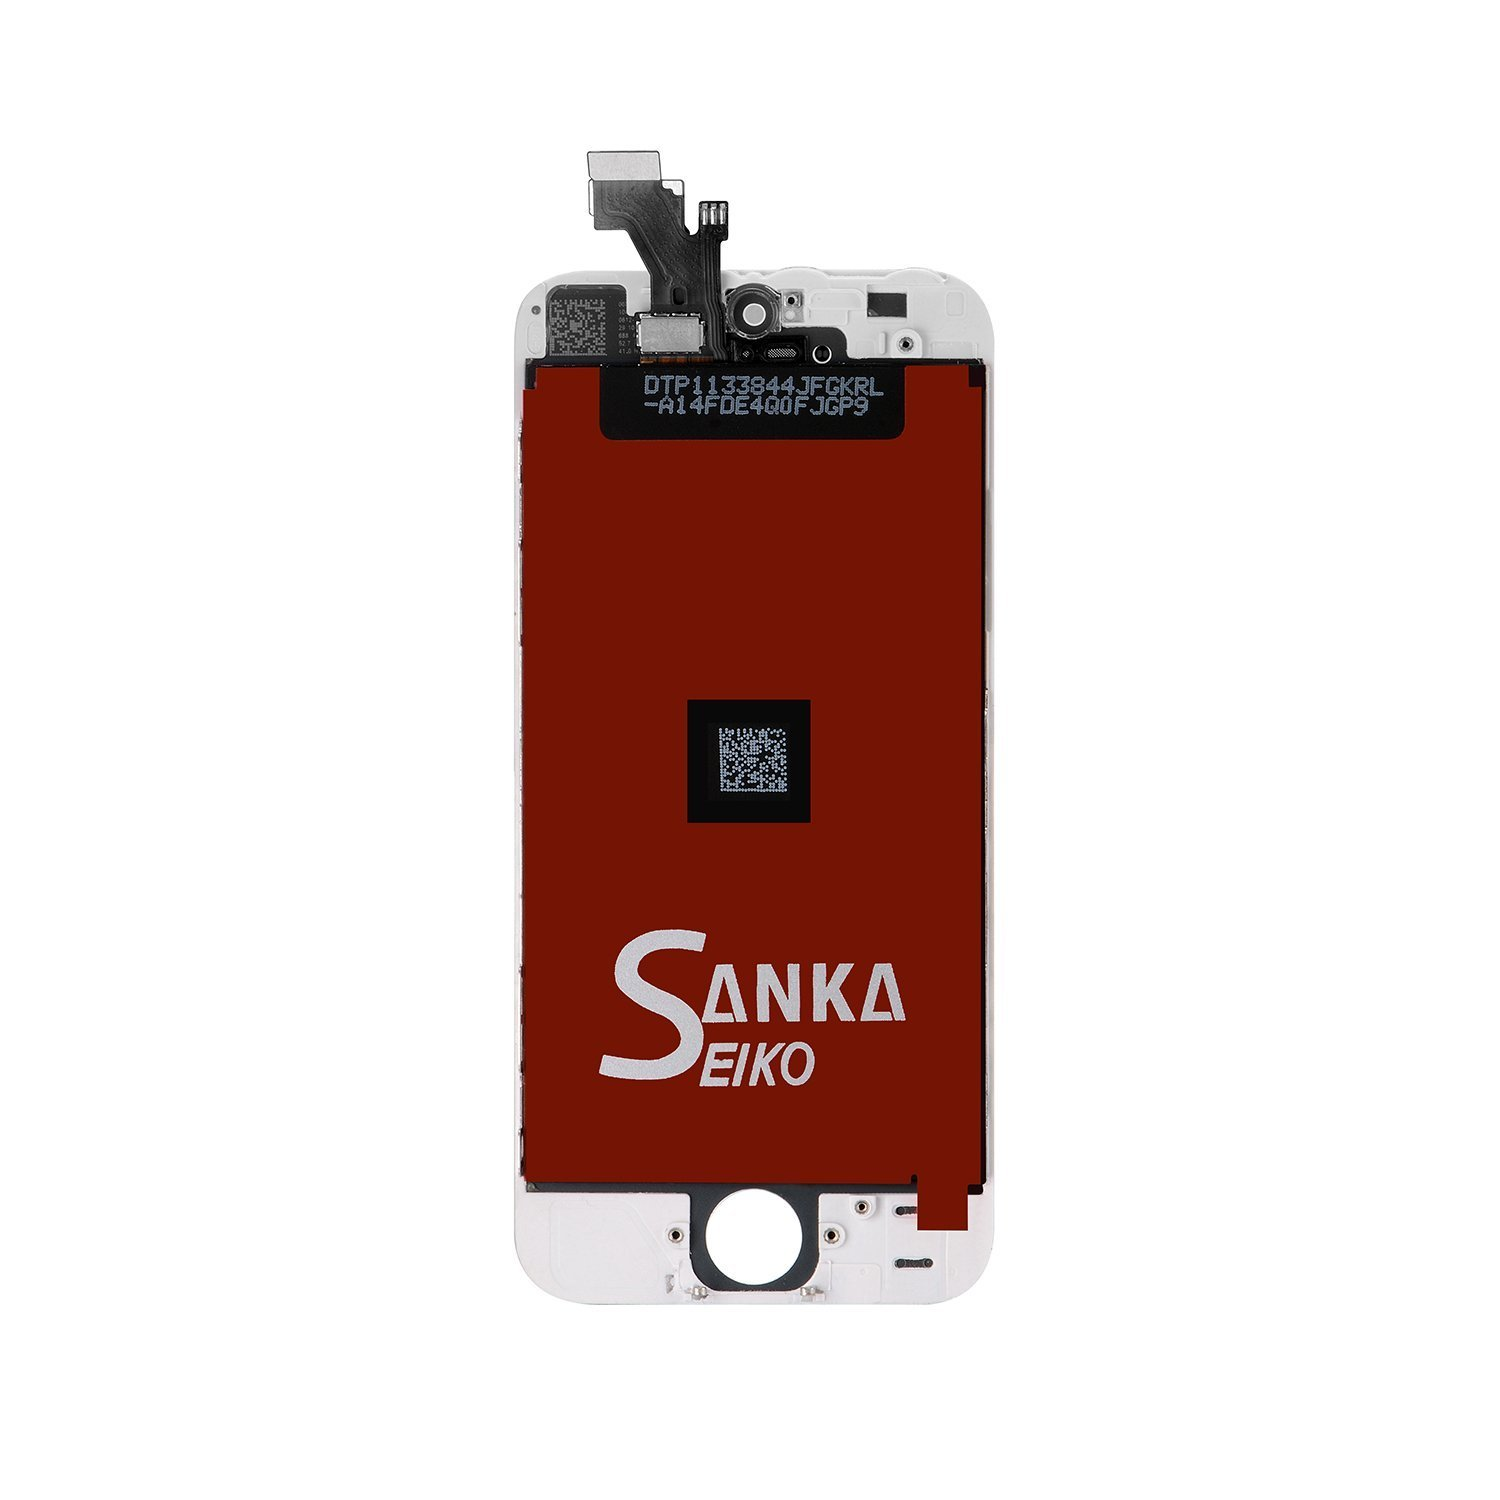 SANKA iPhone 5 LCD Screen Replacement White, Digitizer Display Retina Touch Screen Glass Frame Assembly for iPhone 5 - White (Free Tools Included) by SANKA (Image #2)